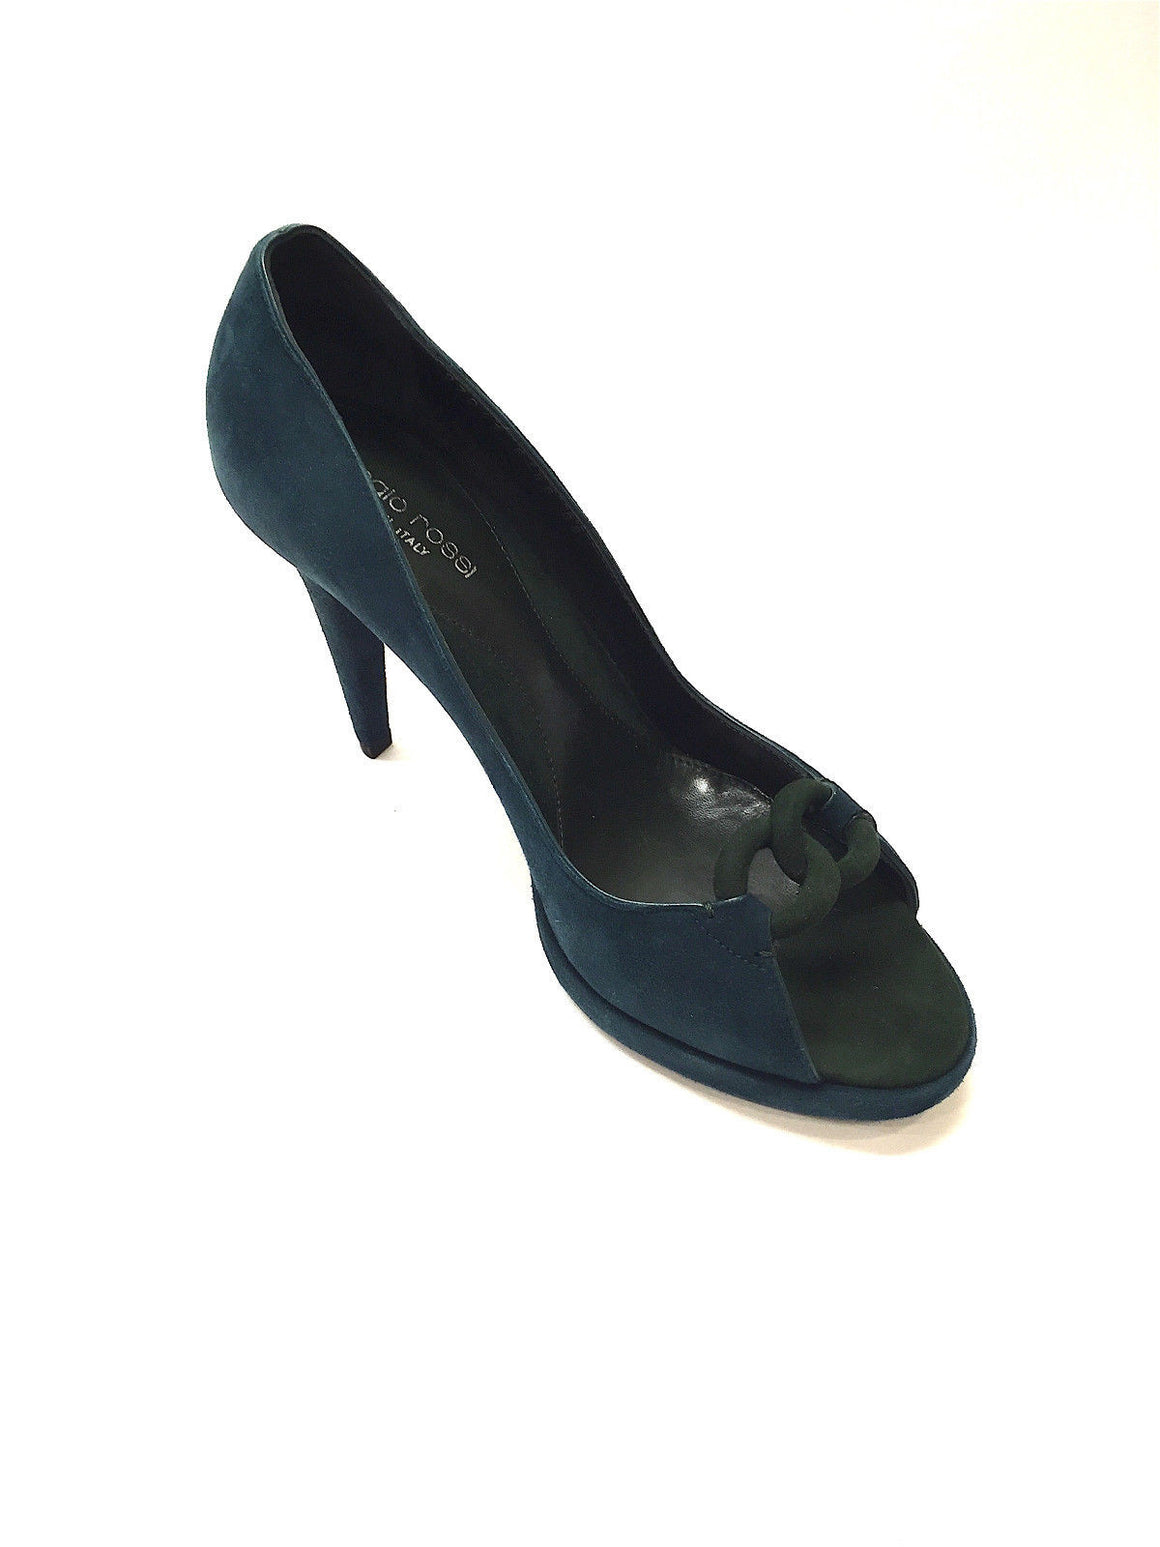 bisbiz.com SERGIO ROSSI  Teal-Green Suede Open Toe Link Detail Platform Heel Pumps  Size: 38 / 8 - Bis Luxury Resale